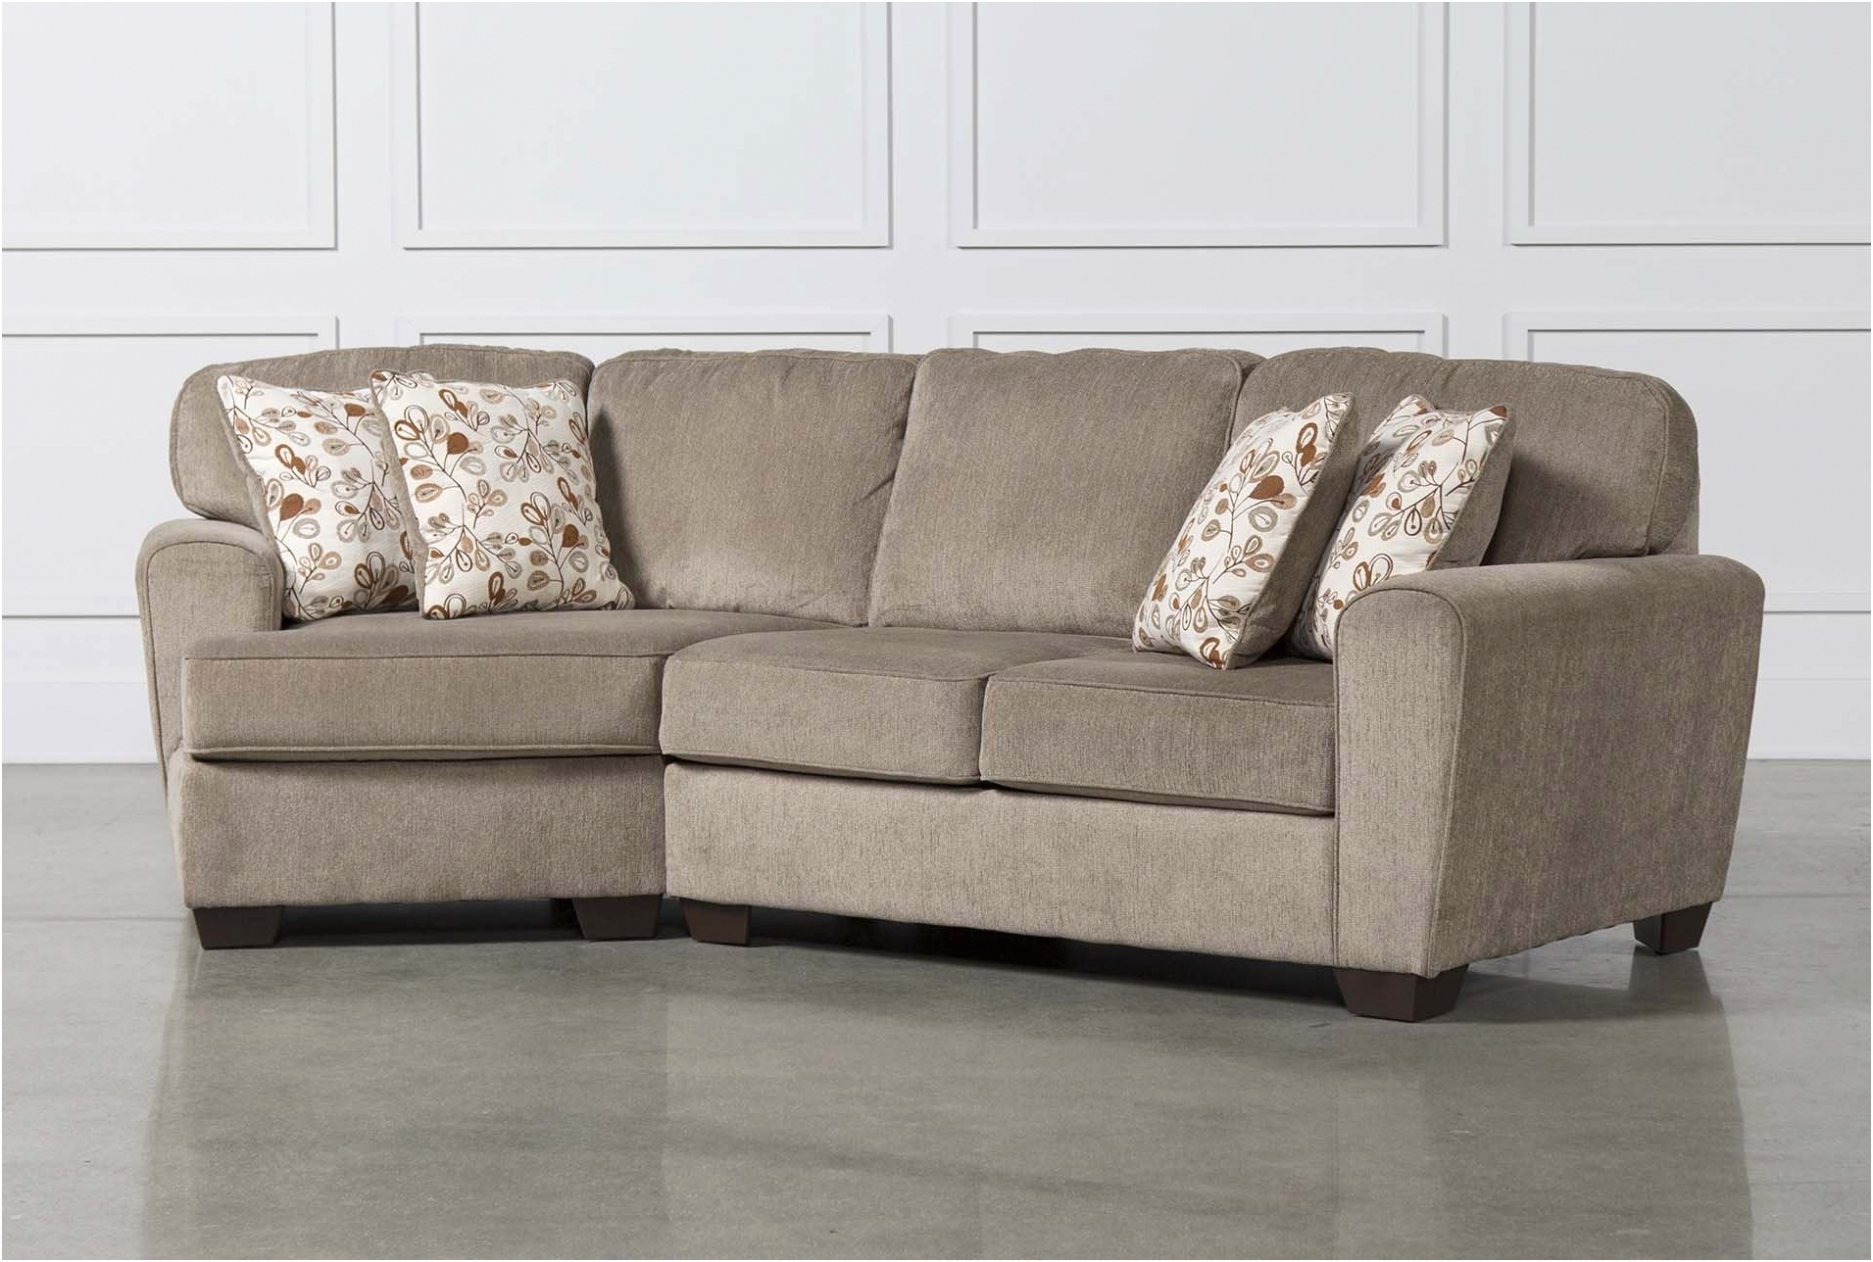 Furniture: Fresh Sectional Sofa With Cuddler Chaise New – Sofa For Sectional Sofas With Cuddler Chaise (View 9 of 10)